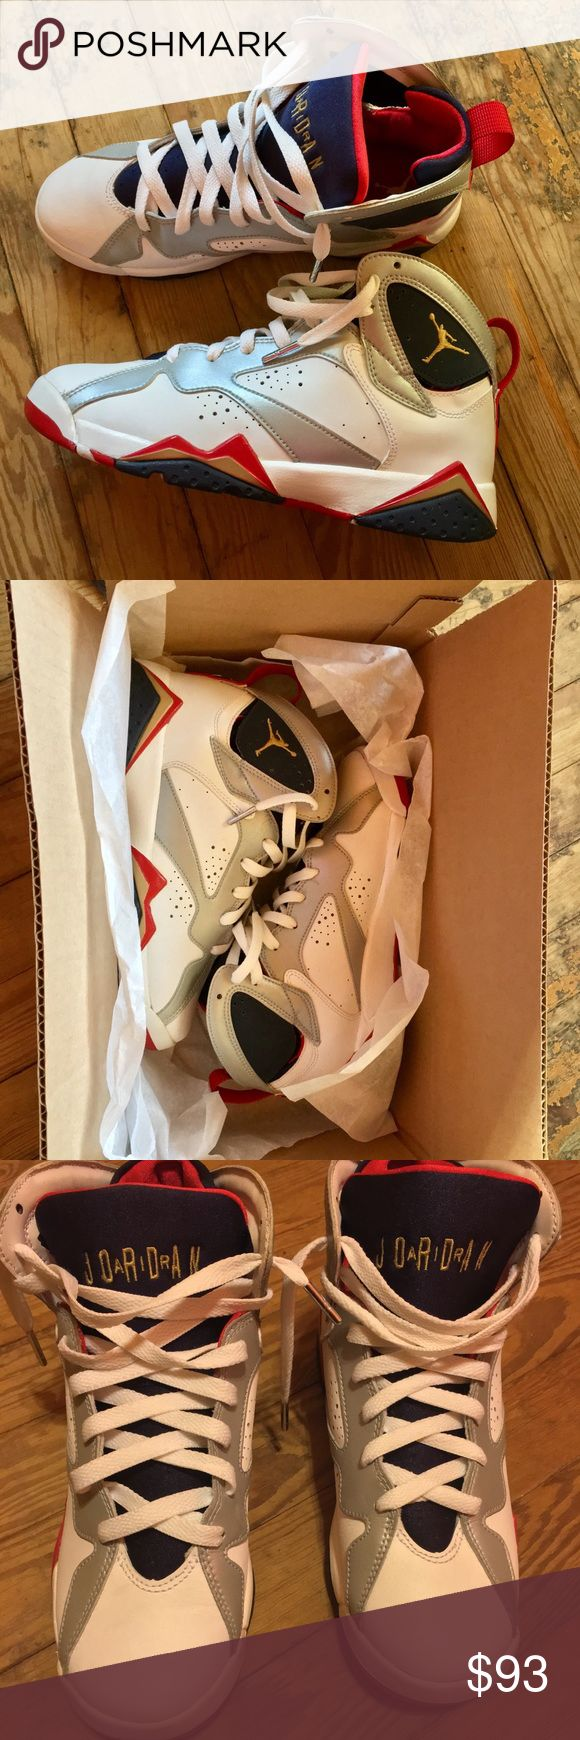 "🤩NIKE AIR JORDAN RETRO 7 OLYMPIC (2012 RELEASE) These shoes are fitted in Grade School Youth size 6.5 they're unisex shoes for boys and girls. These shoes are in great condition; however there is ""slight"" cracking around the inner lower part of the shoes; nothing major. (the cracking is only noticeable up ""really"" close) due to white shoe polish that was applied to them. The overall structure of the shoes are in excellent condition; there is no sole seperation, creasing etc. Condition…"